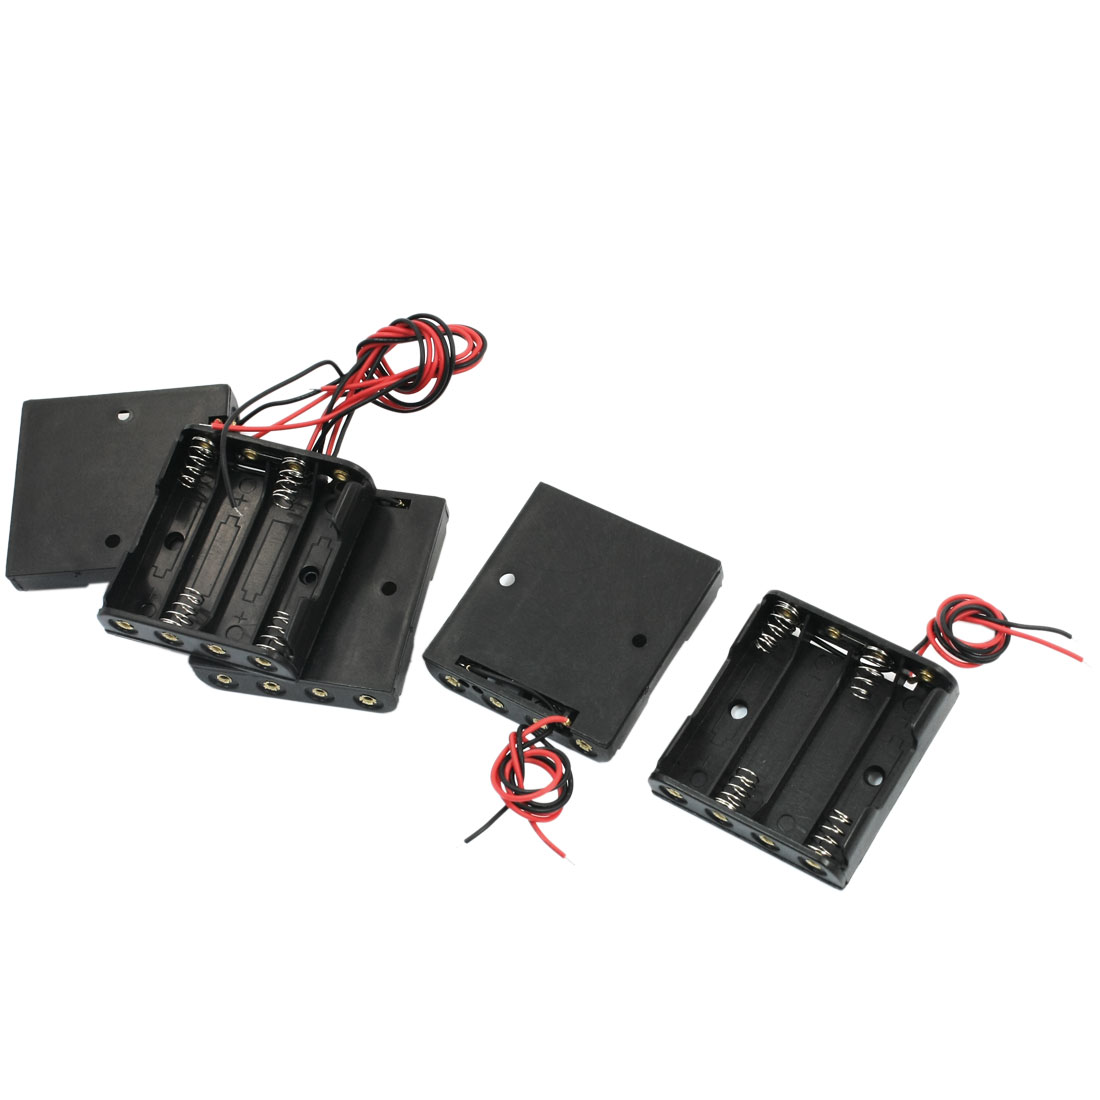 5 Pcs Open Frame Spring Loaded Dual Wire Plastic Shell 4 x 1.5V AAA Battery Holder Case Storage Cell Box